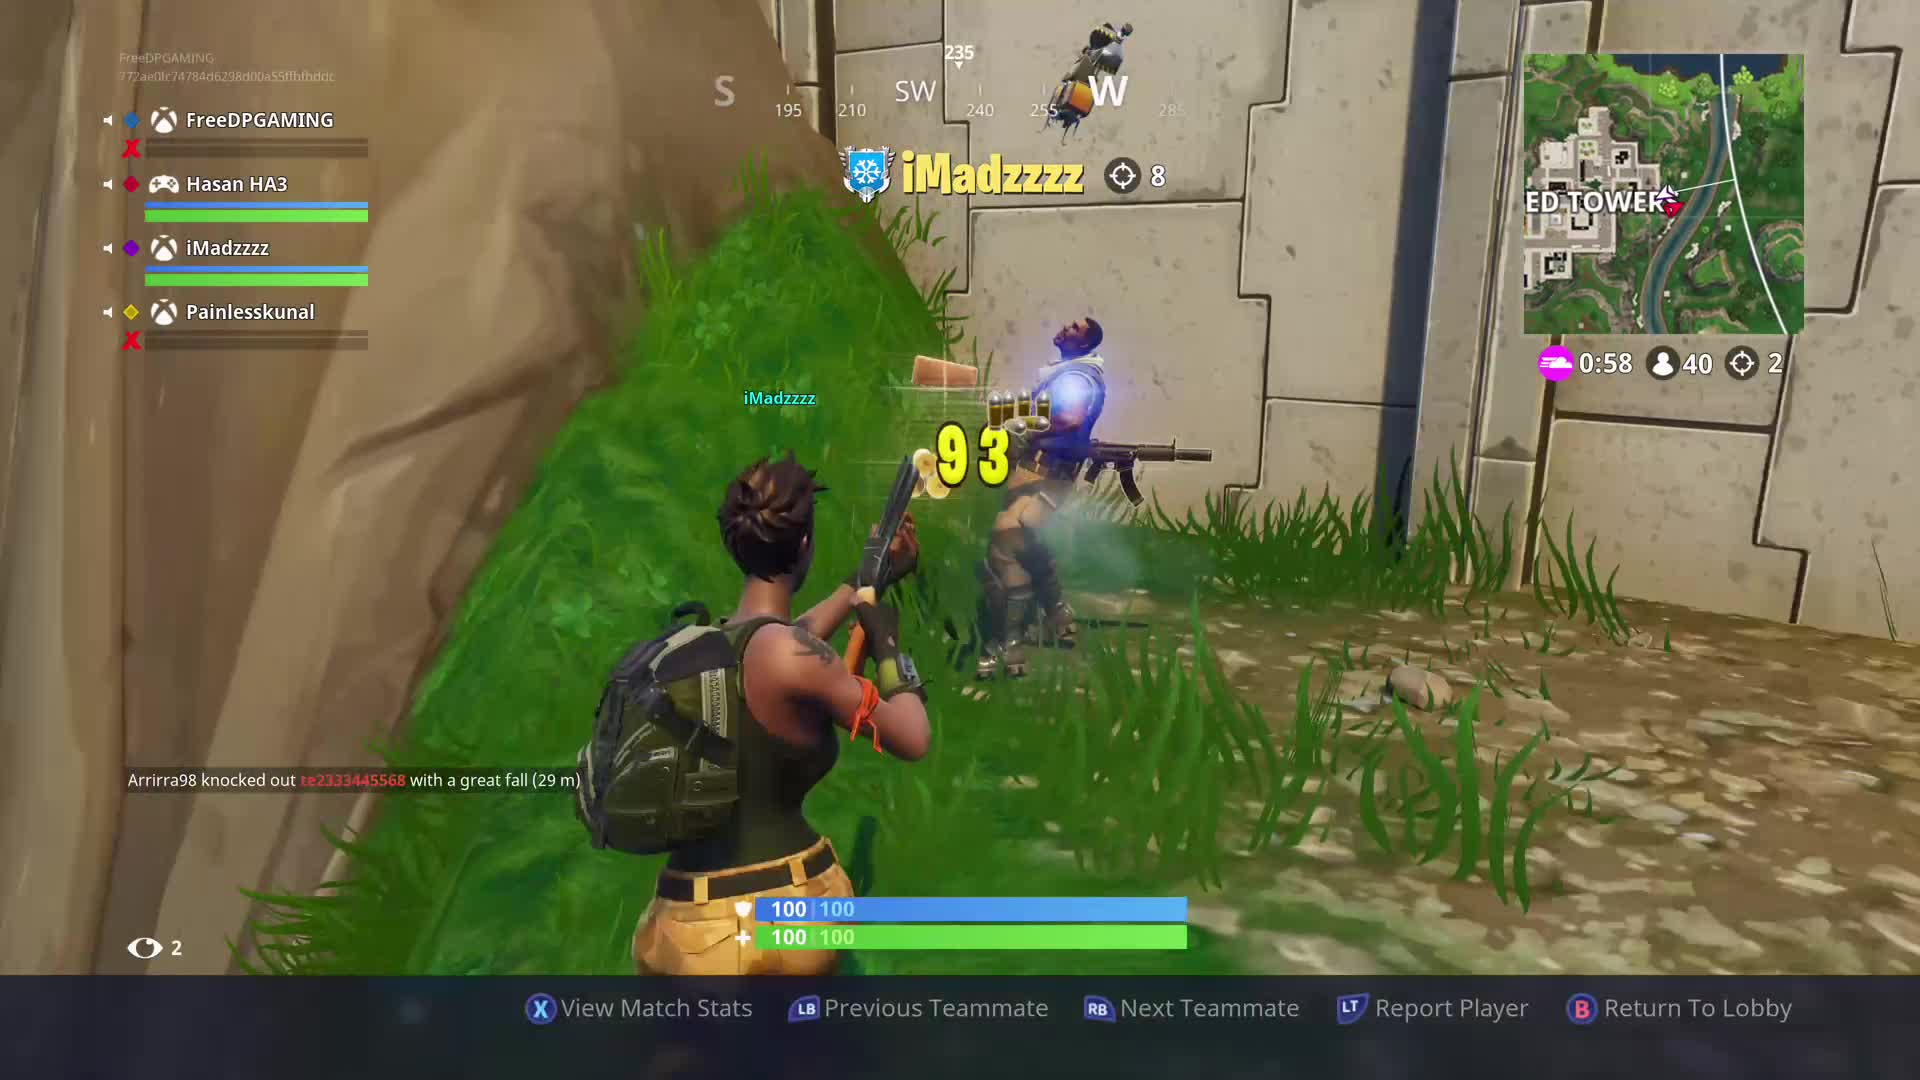 FortniteBattleRoyale, FreeDPGAMING, xbox, xbox dvr, xbox one, Mad GIFs